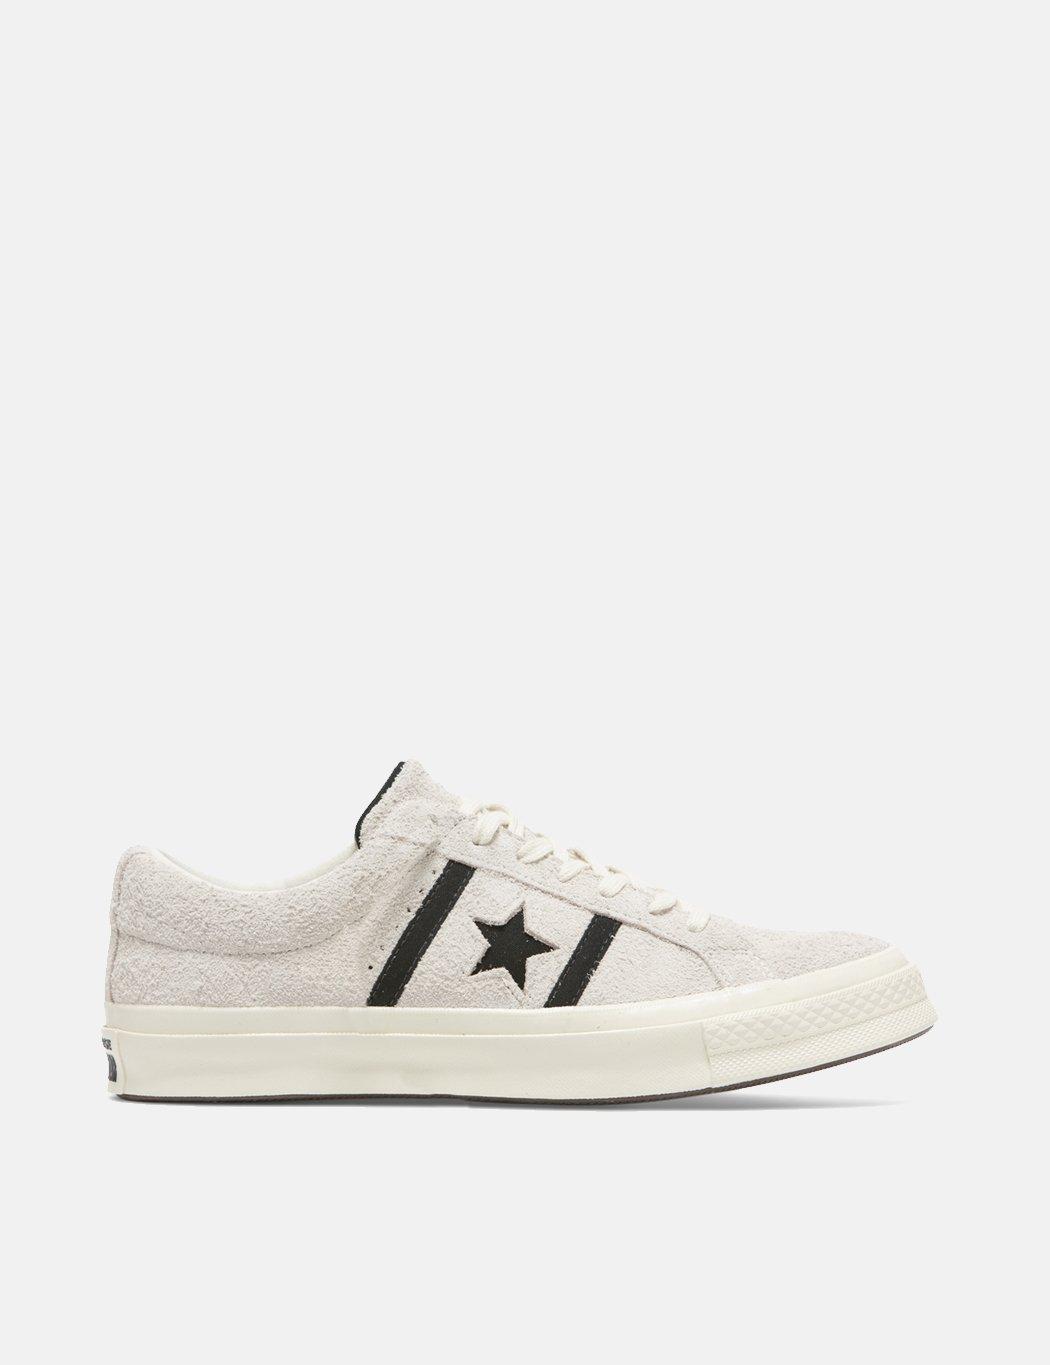 newest e9ef8 c2f5b Converse One Star Academy Low Top in White for Men - Lyst